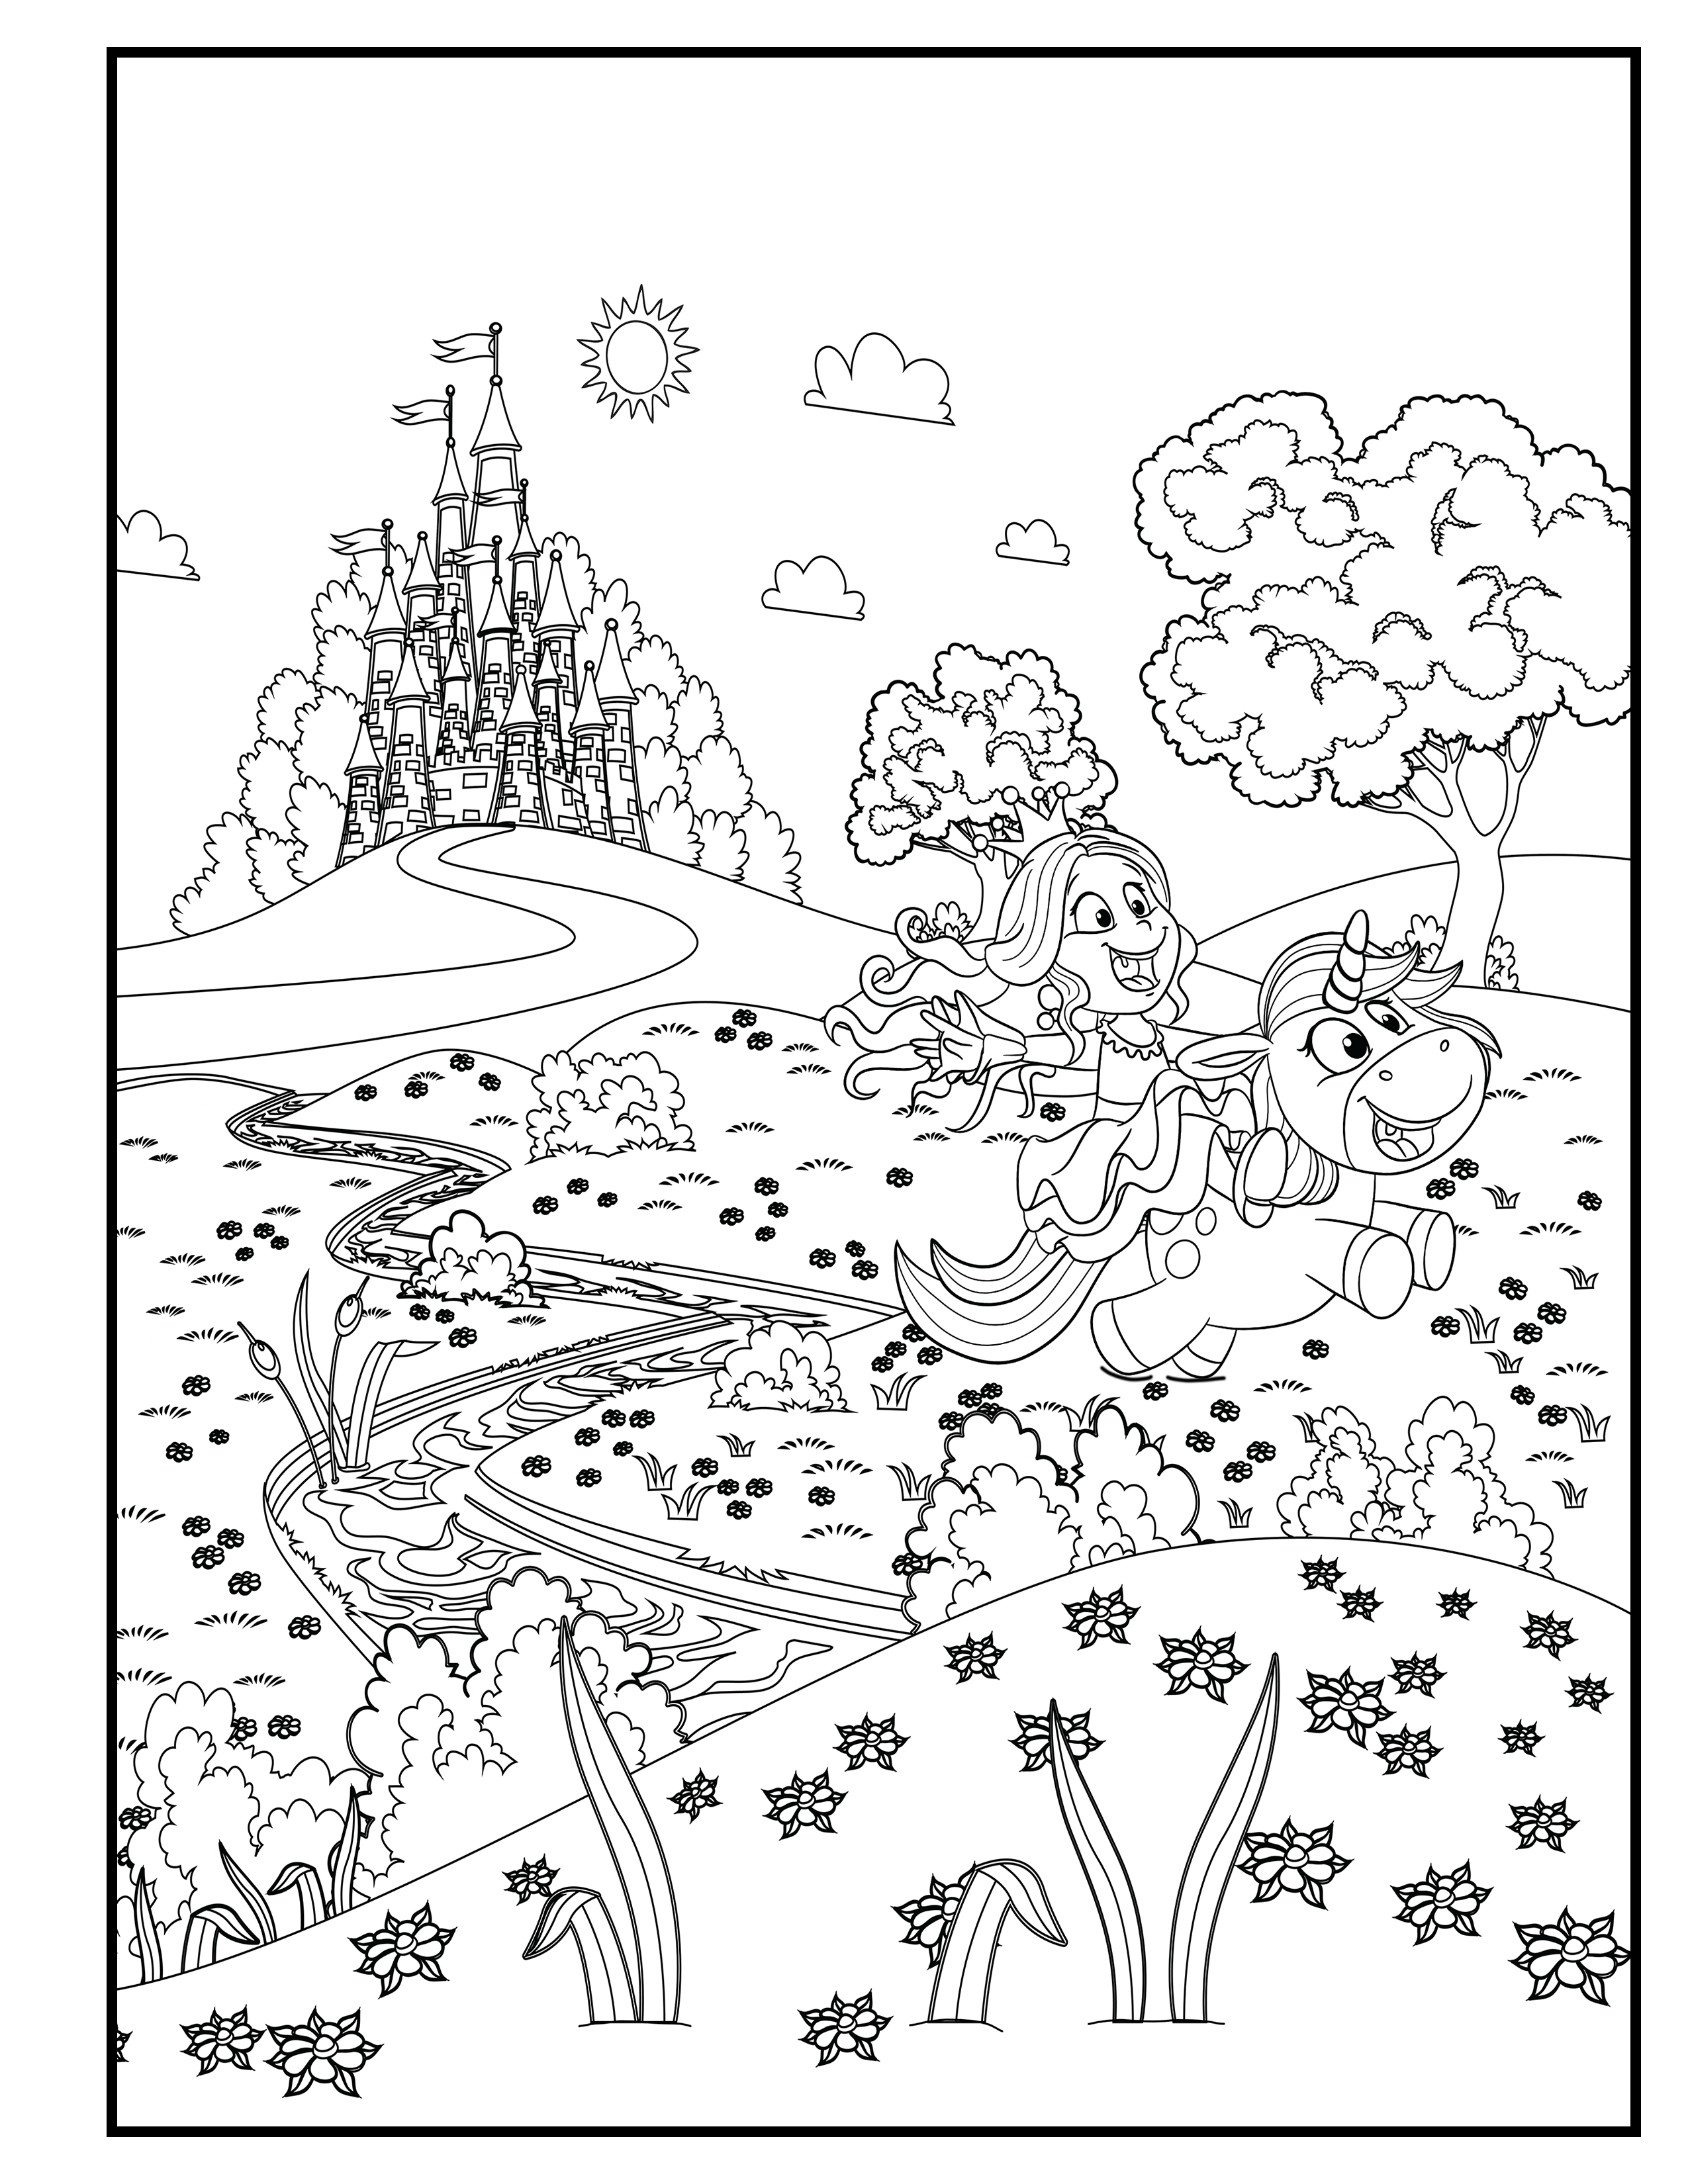 Princess With A Unicorn Playing In The Meadow Unicorn Coloring Book For Kids Image 2 Fairy Coloring Book Coloring Books Princess Coloring Pages